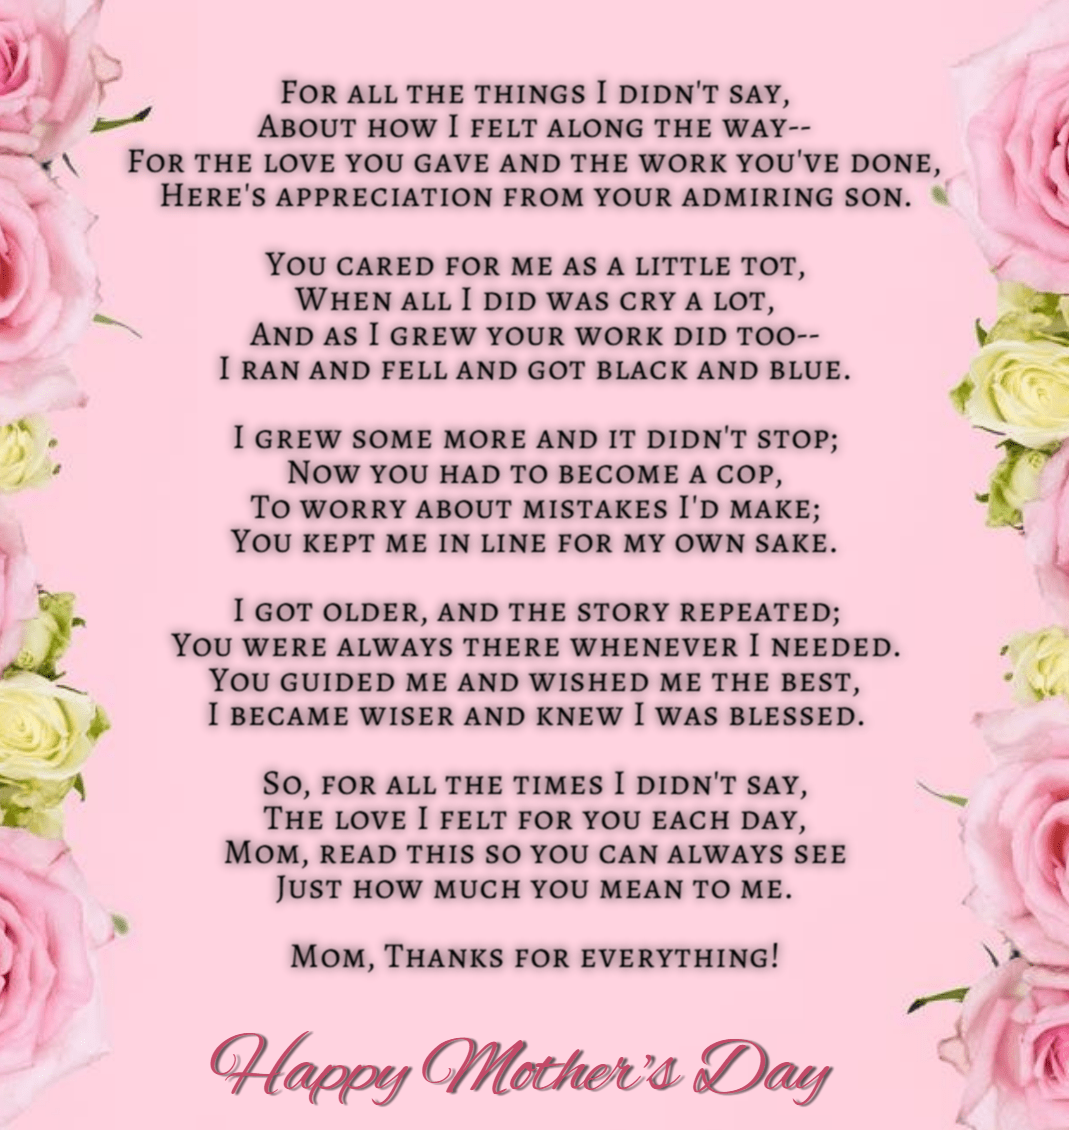 Happy Mothers Day Poem From Son